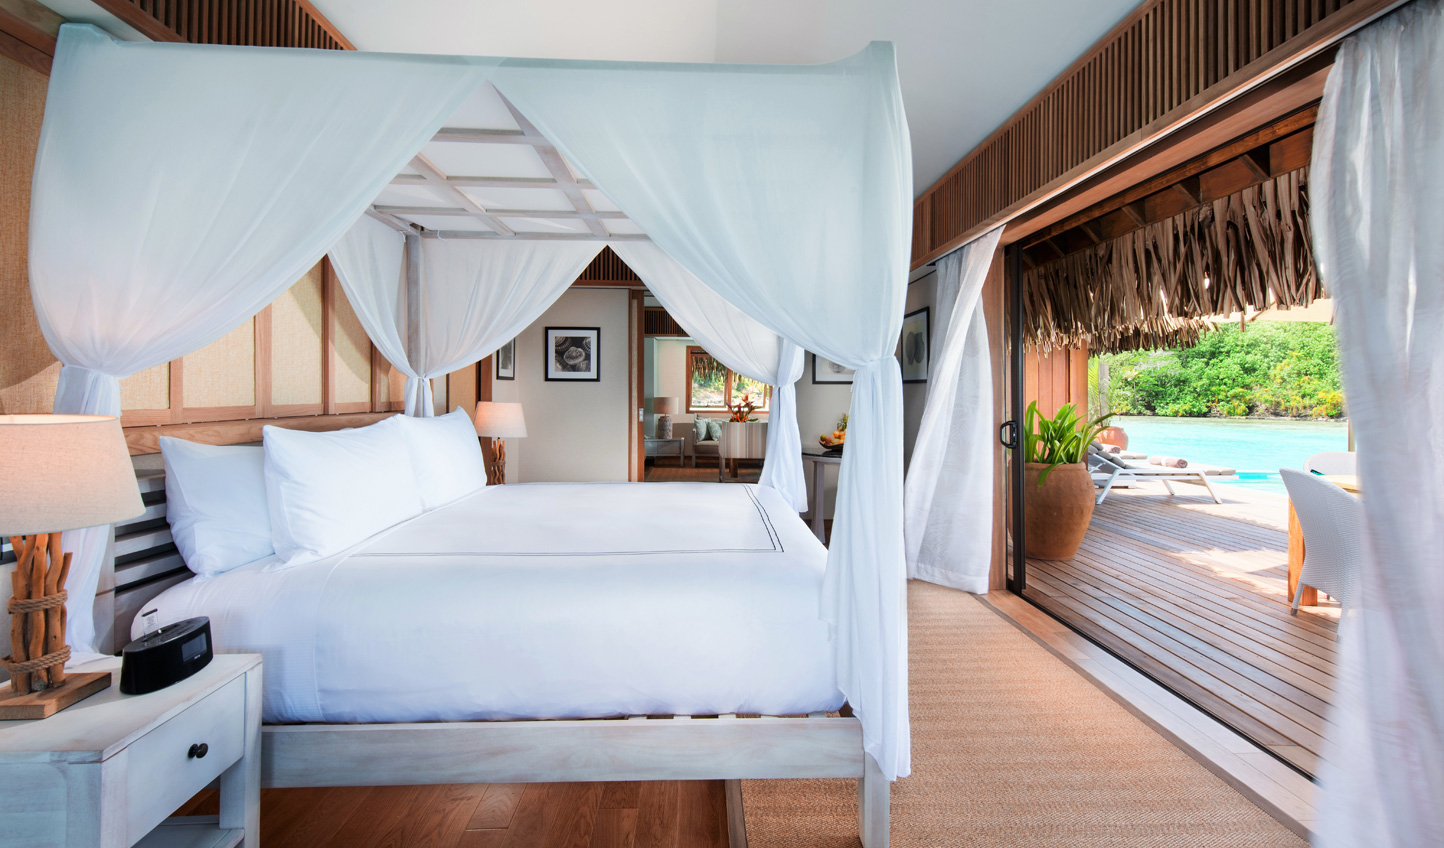 Wake up to views across the lagoon